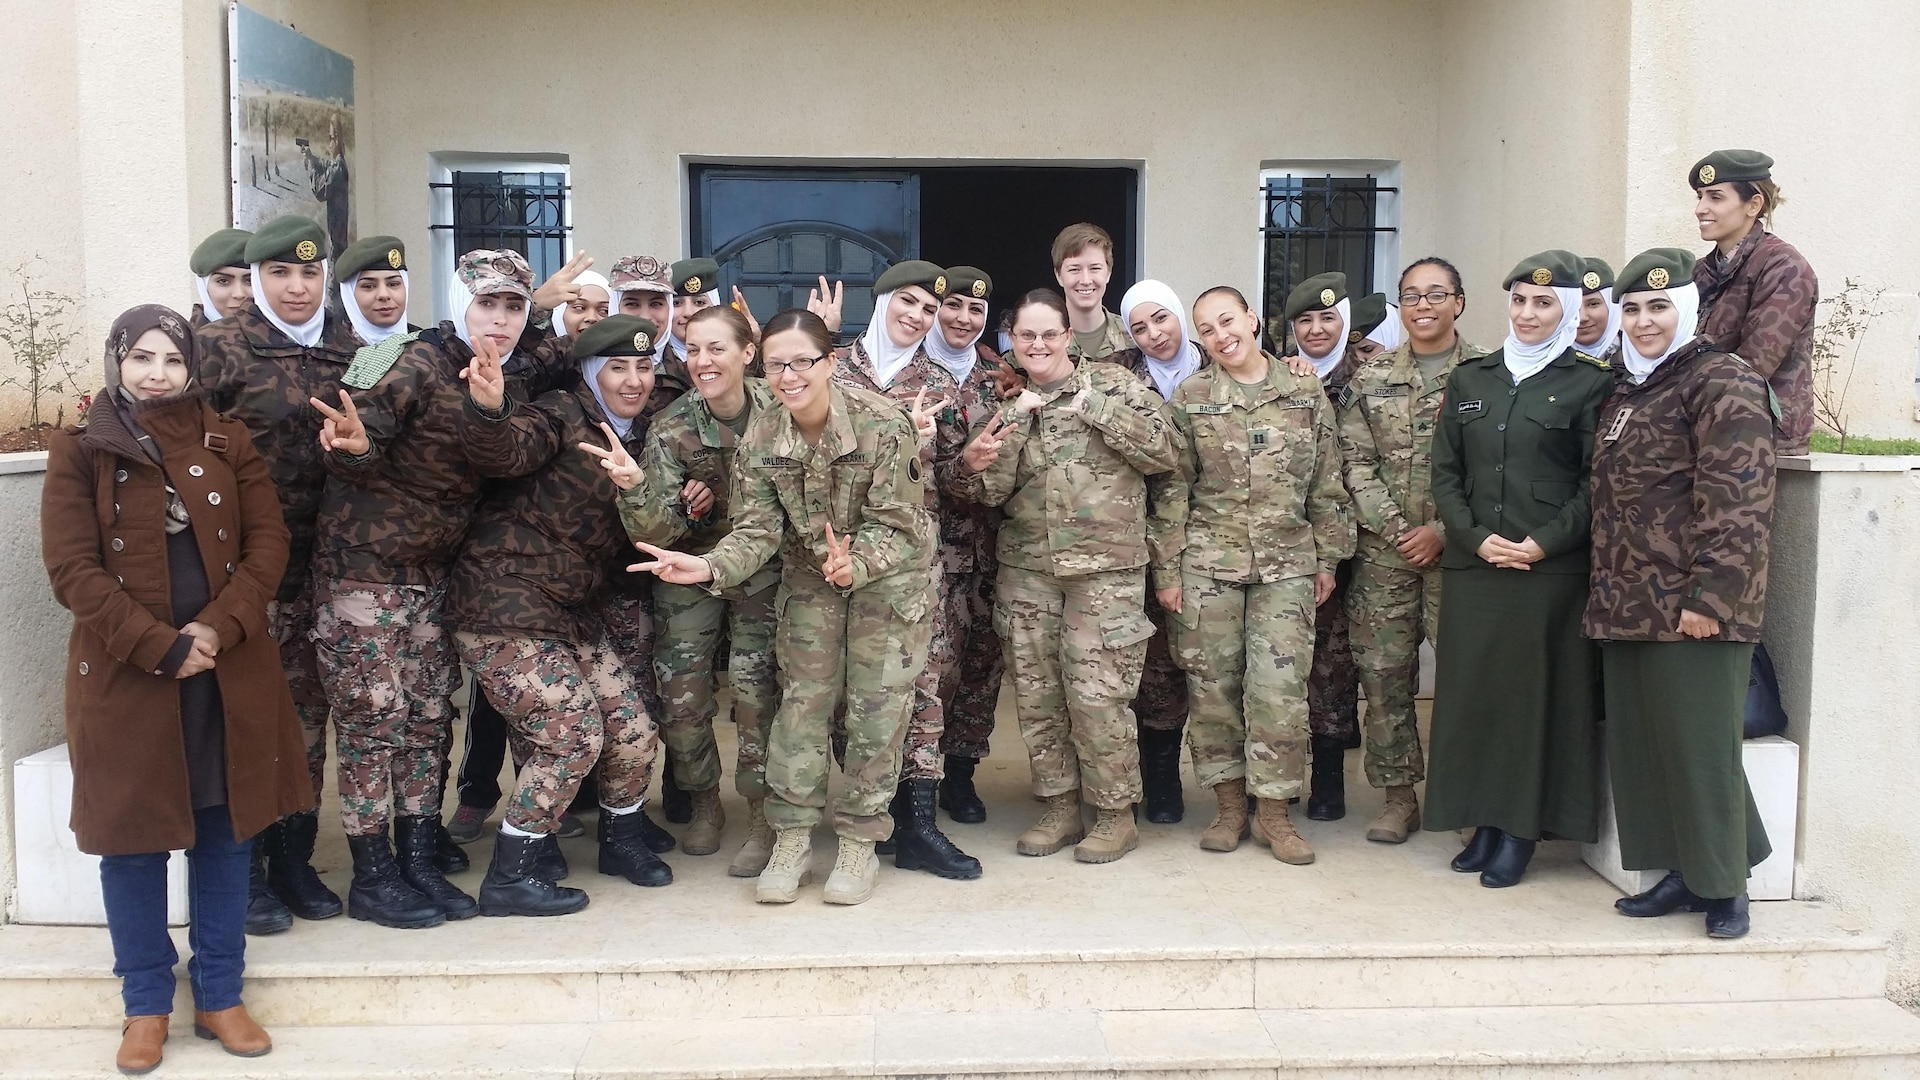 Female Maryland and Virginia National Guard Soldiers from the 29th Infantry Division pose with female soldiers from the Jordan Armed Forces- Arab Army Female Company For Special Security Tasks during an engagement Jan. 17, 2017, near Amman, Jordan. While in Jordan from September 2016- July 2017, Soldiers of Task Force 29 planned and coordinated multiple engagements with JAF female soldiers, providing both U.S. and Jordanian military women the opportunity to exchange information and best practices on leadership, communications skills and various women's empowerment topics. (Courtesy photo)